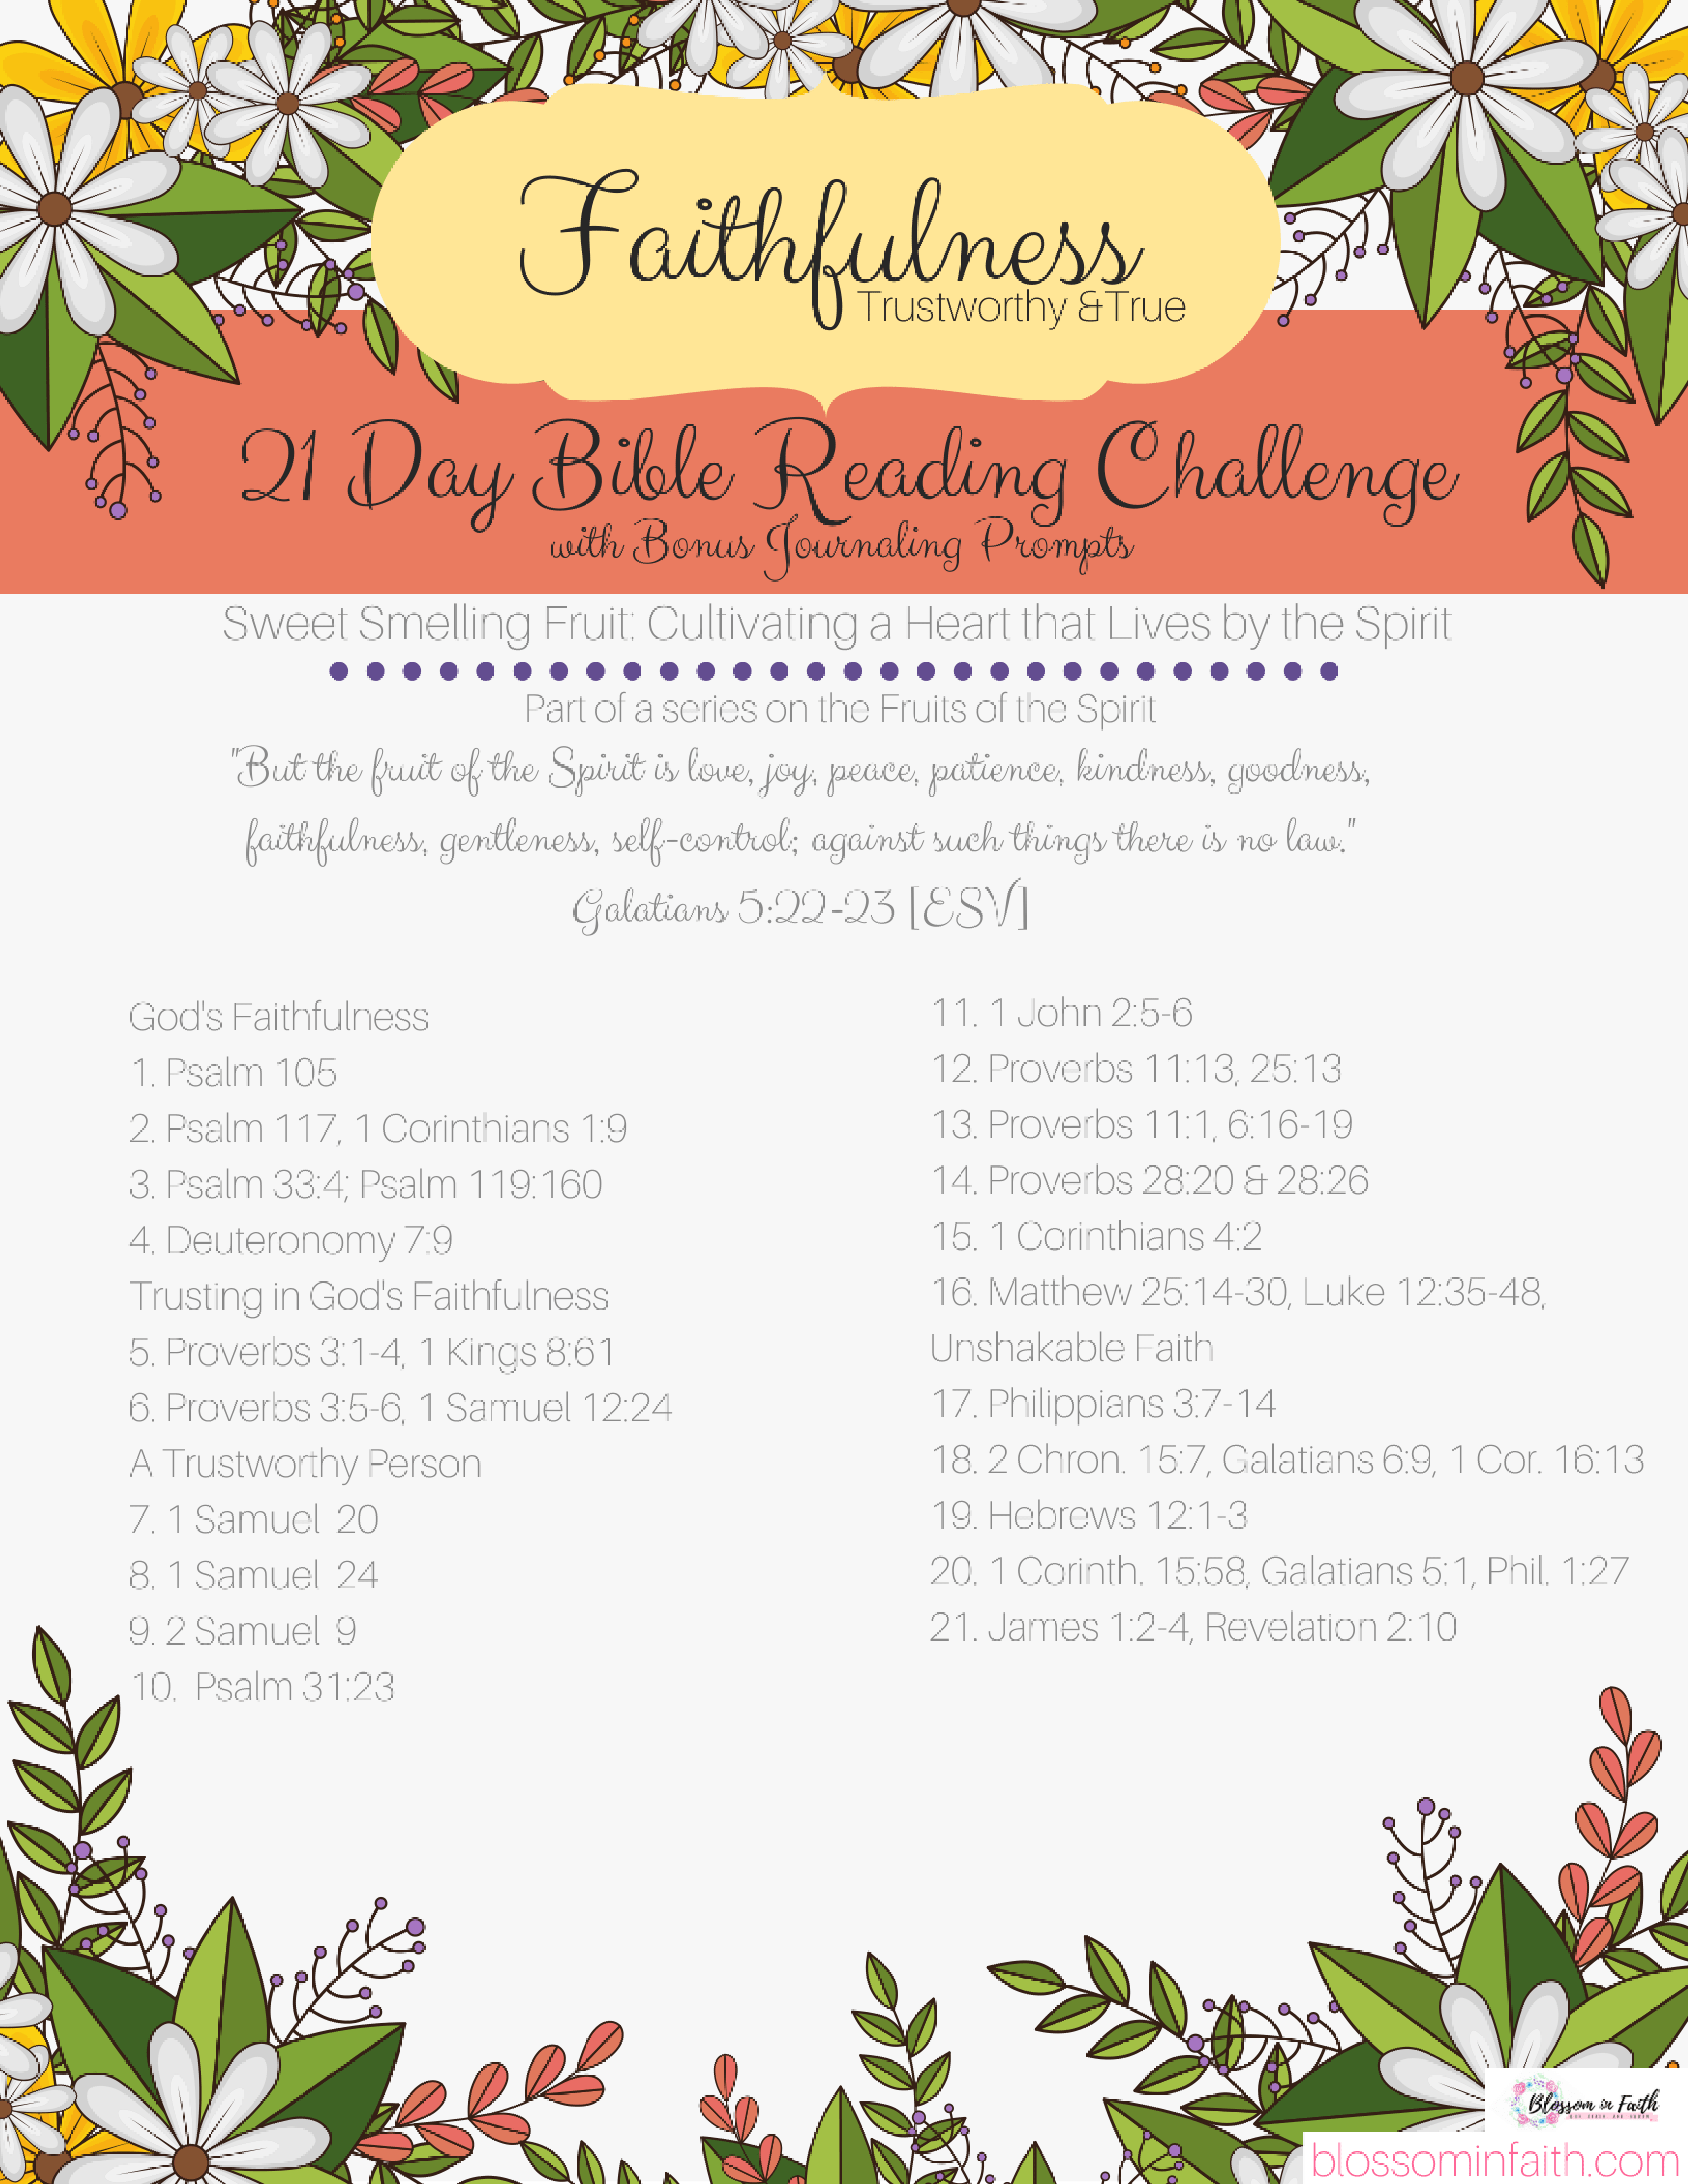 Take A closer look at the Fruits of the Spirit. Printable 30 day topical bible study reading challenge on Faithfulness. Also Includes bonus journaling paper with prompts.